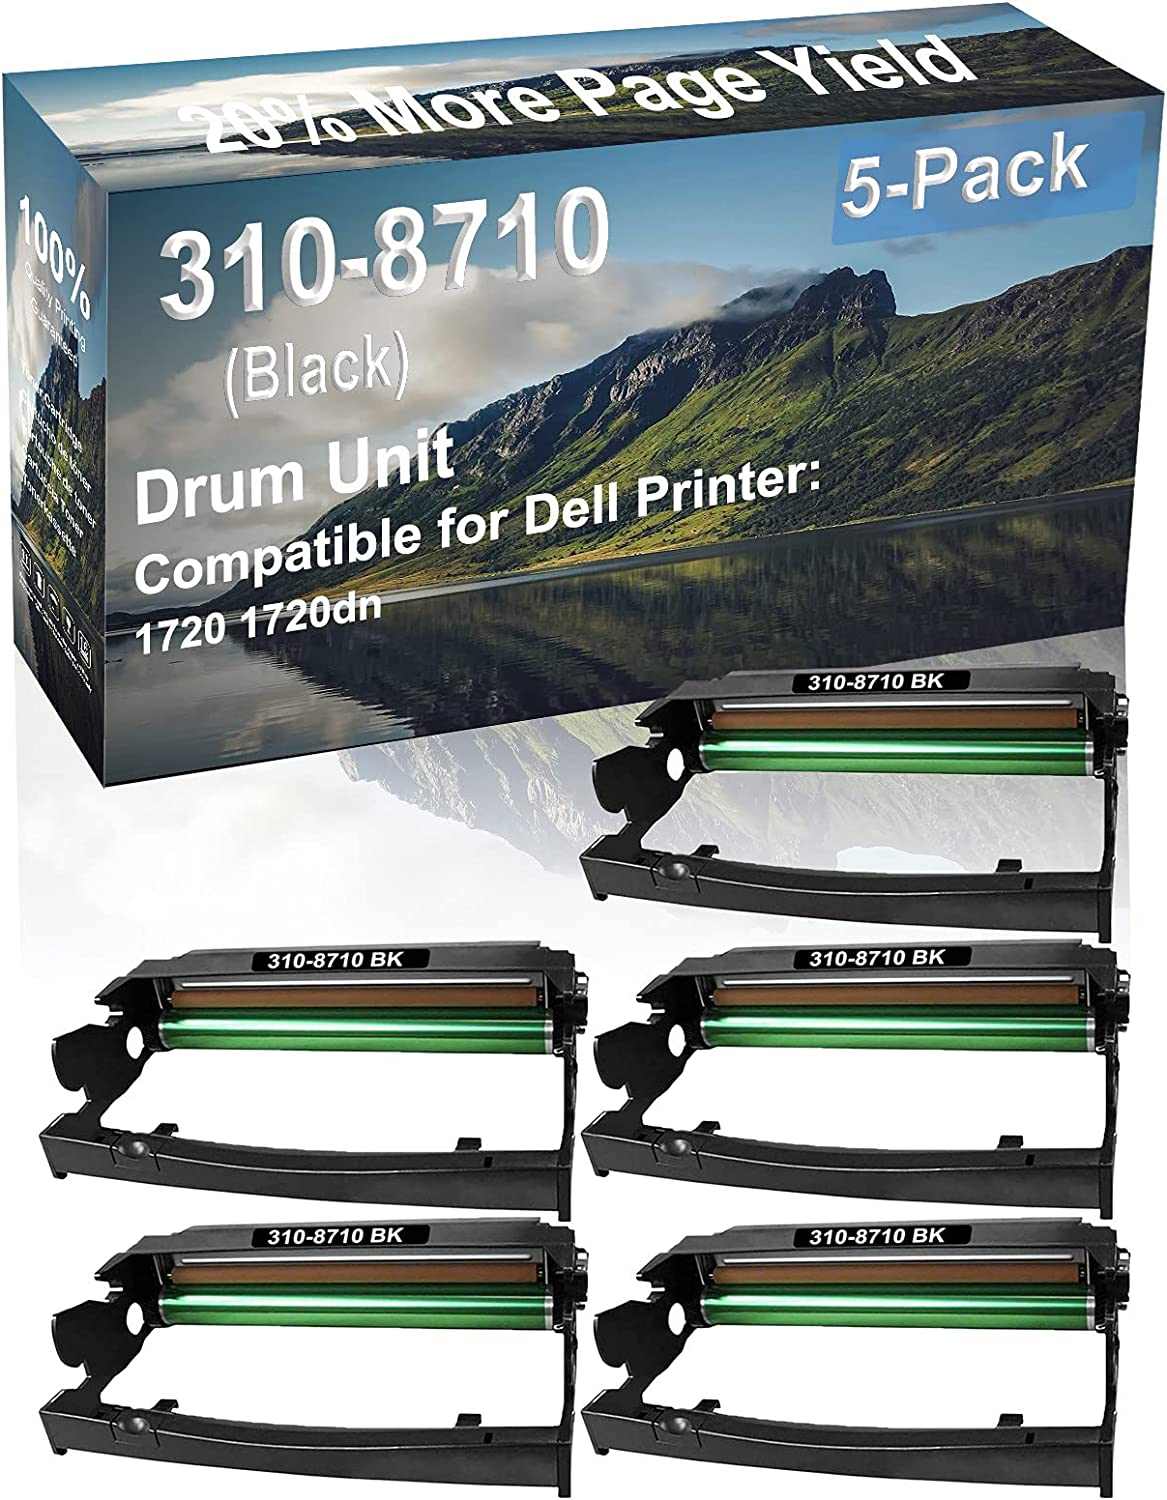 5-Pack Compatible Drum Unit (Black) Replacement for Dell 310-8710 Drum Kit use for Dell 1720 1720dn Printer